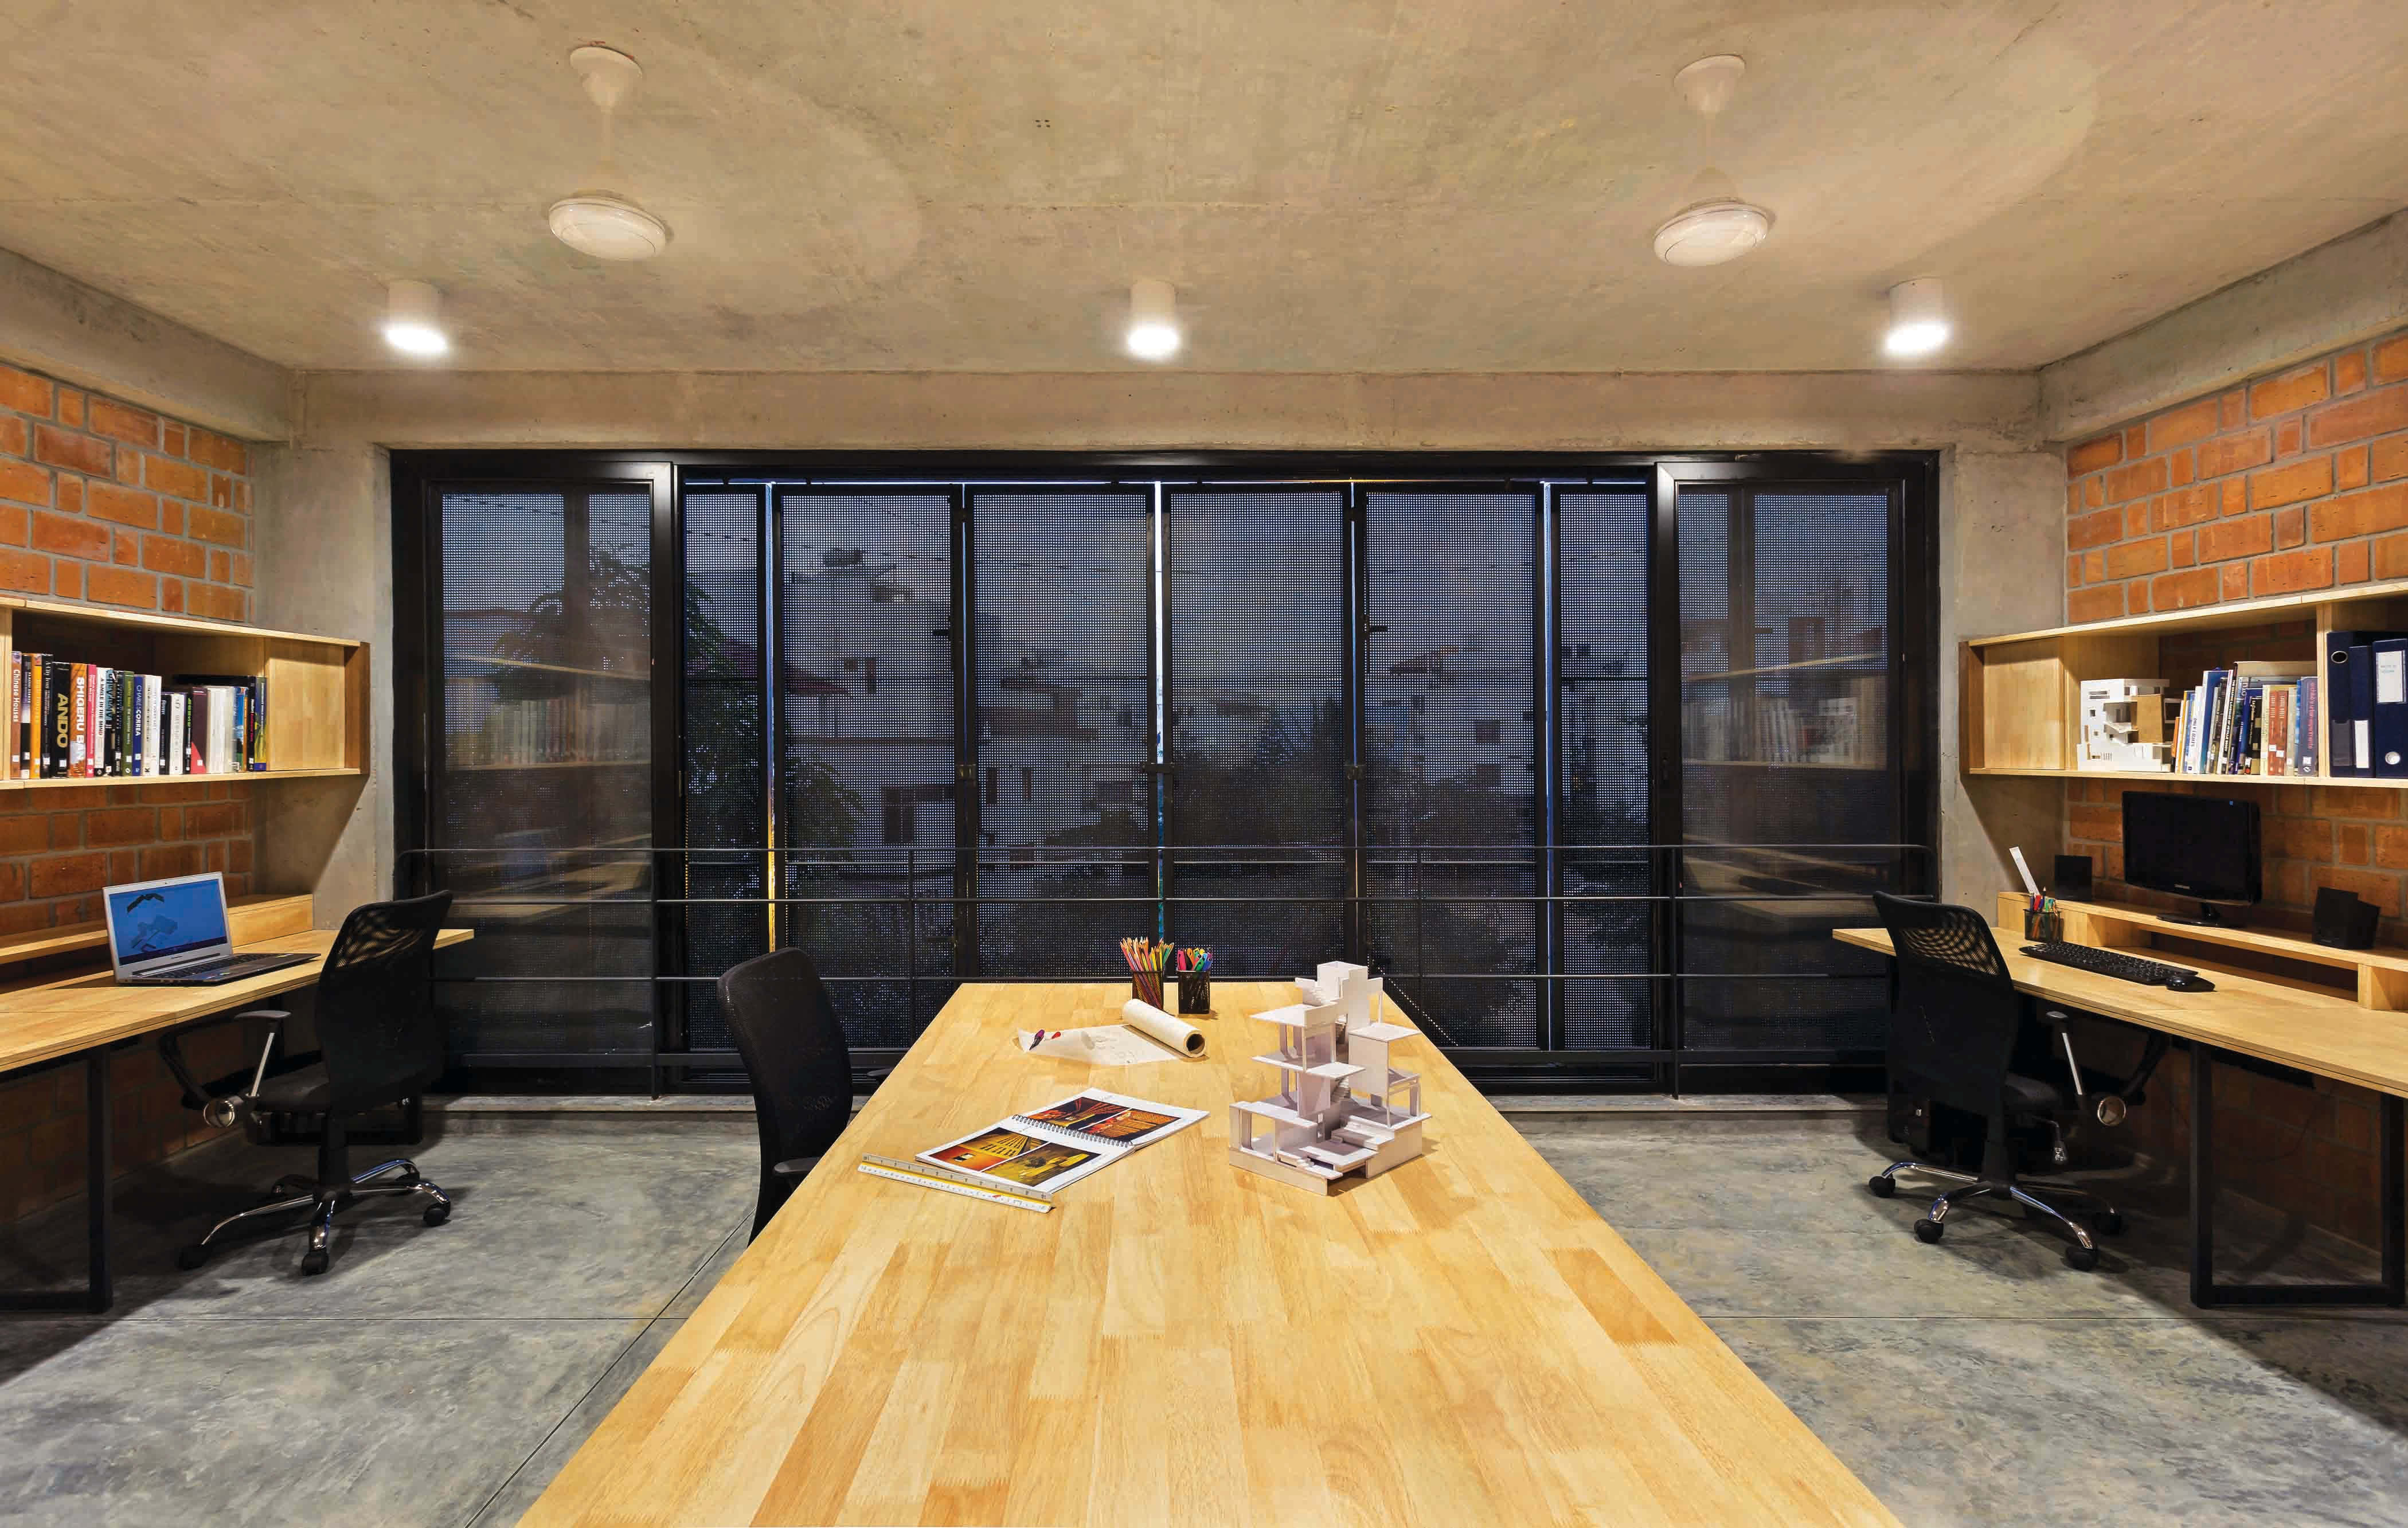 Divya e betweenspaces architects house and studio for Between spaces architecture bangalore